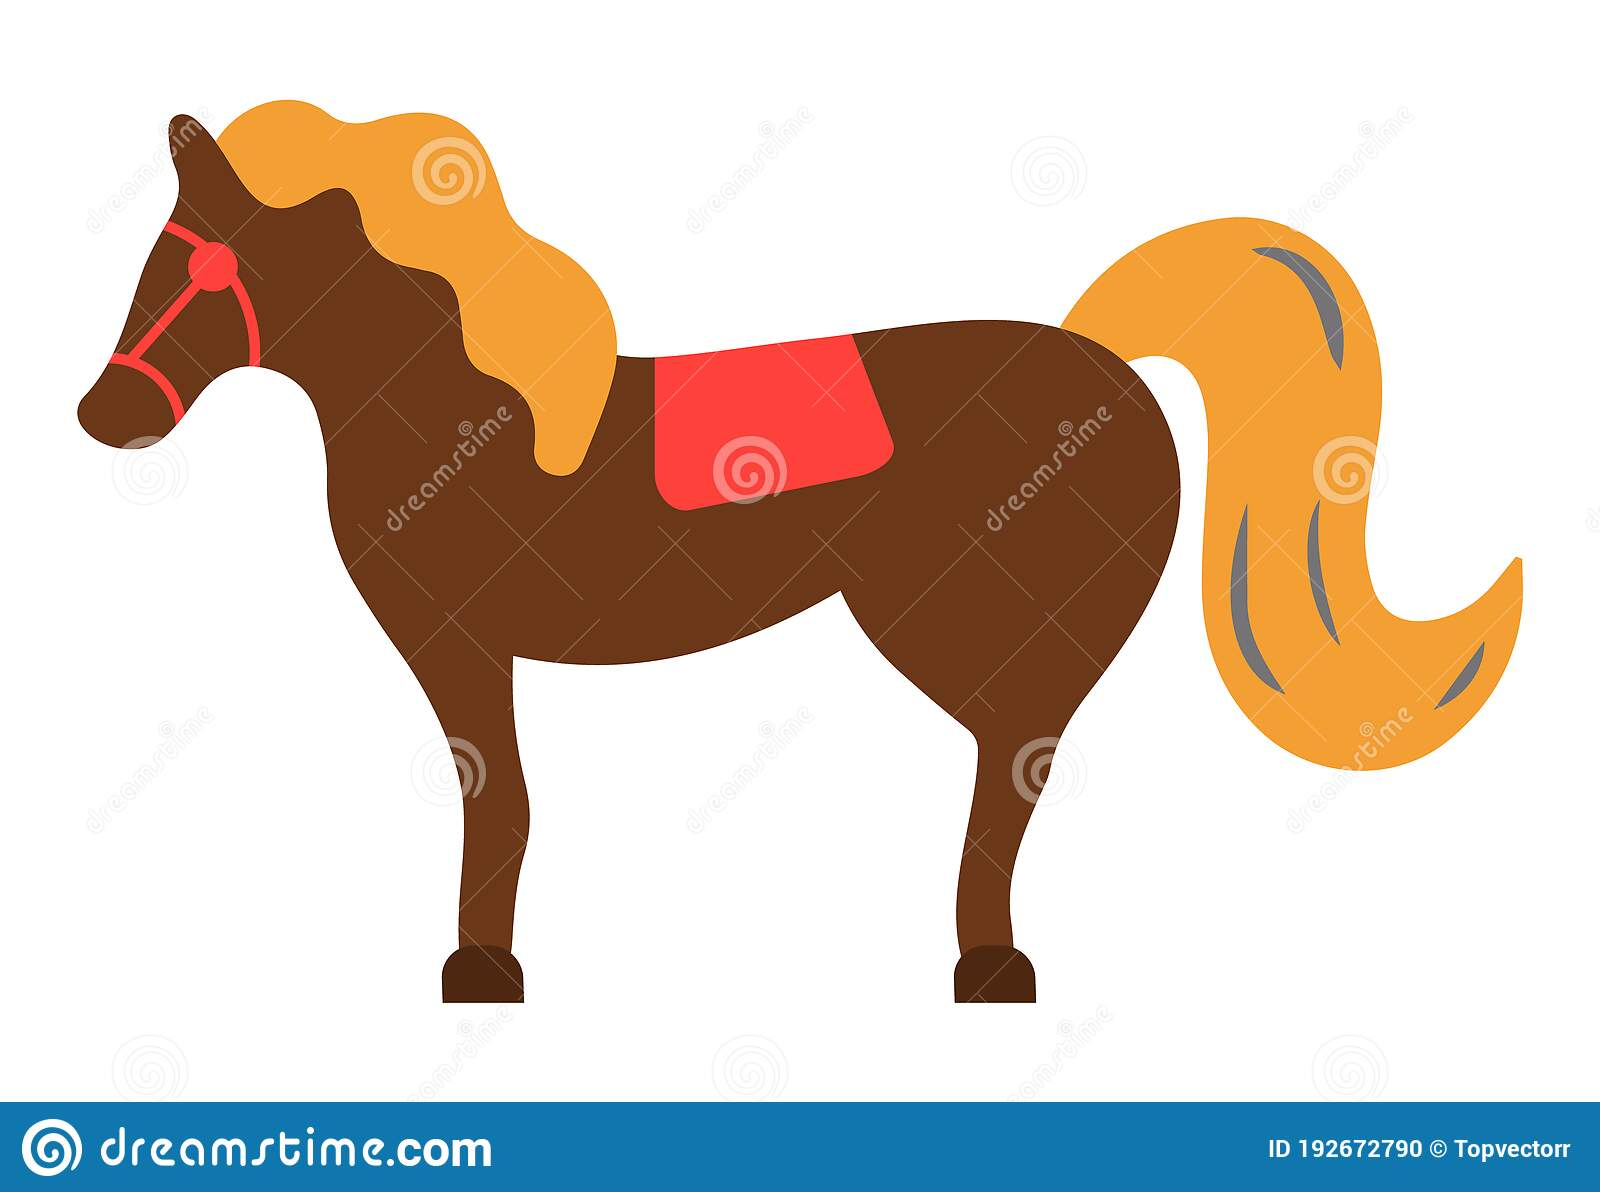 Isolated Icon Horse At White Background Farm Animal With Stirrups And Saddle Racehorse Clip Art Stock Vector Illustration Of Drawing Island 192672790